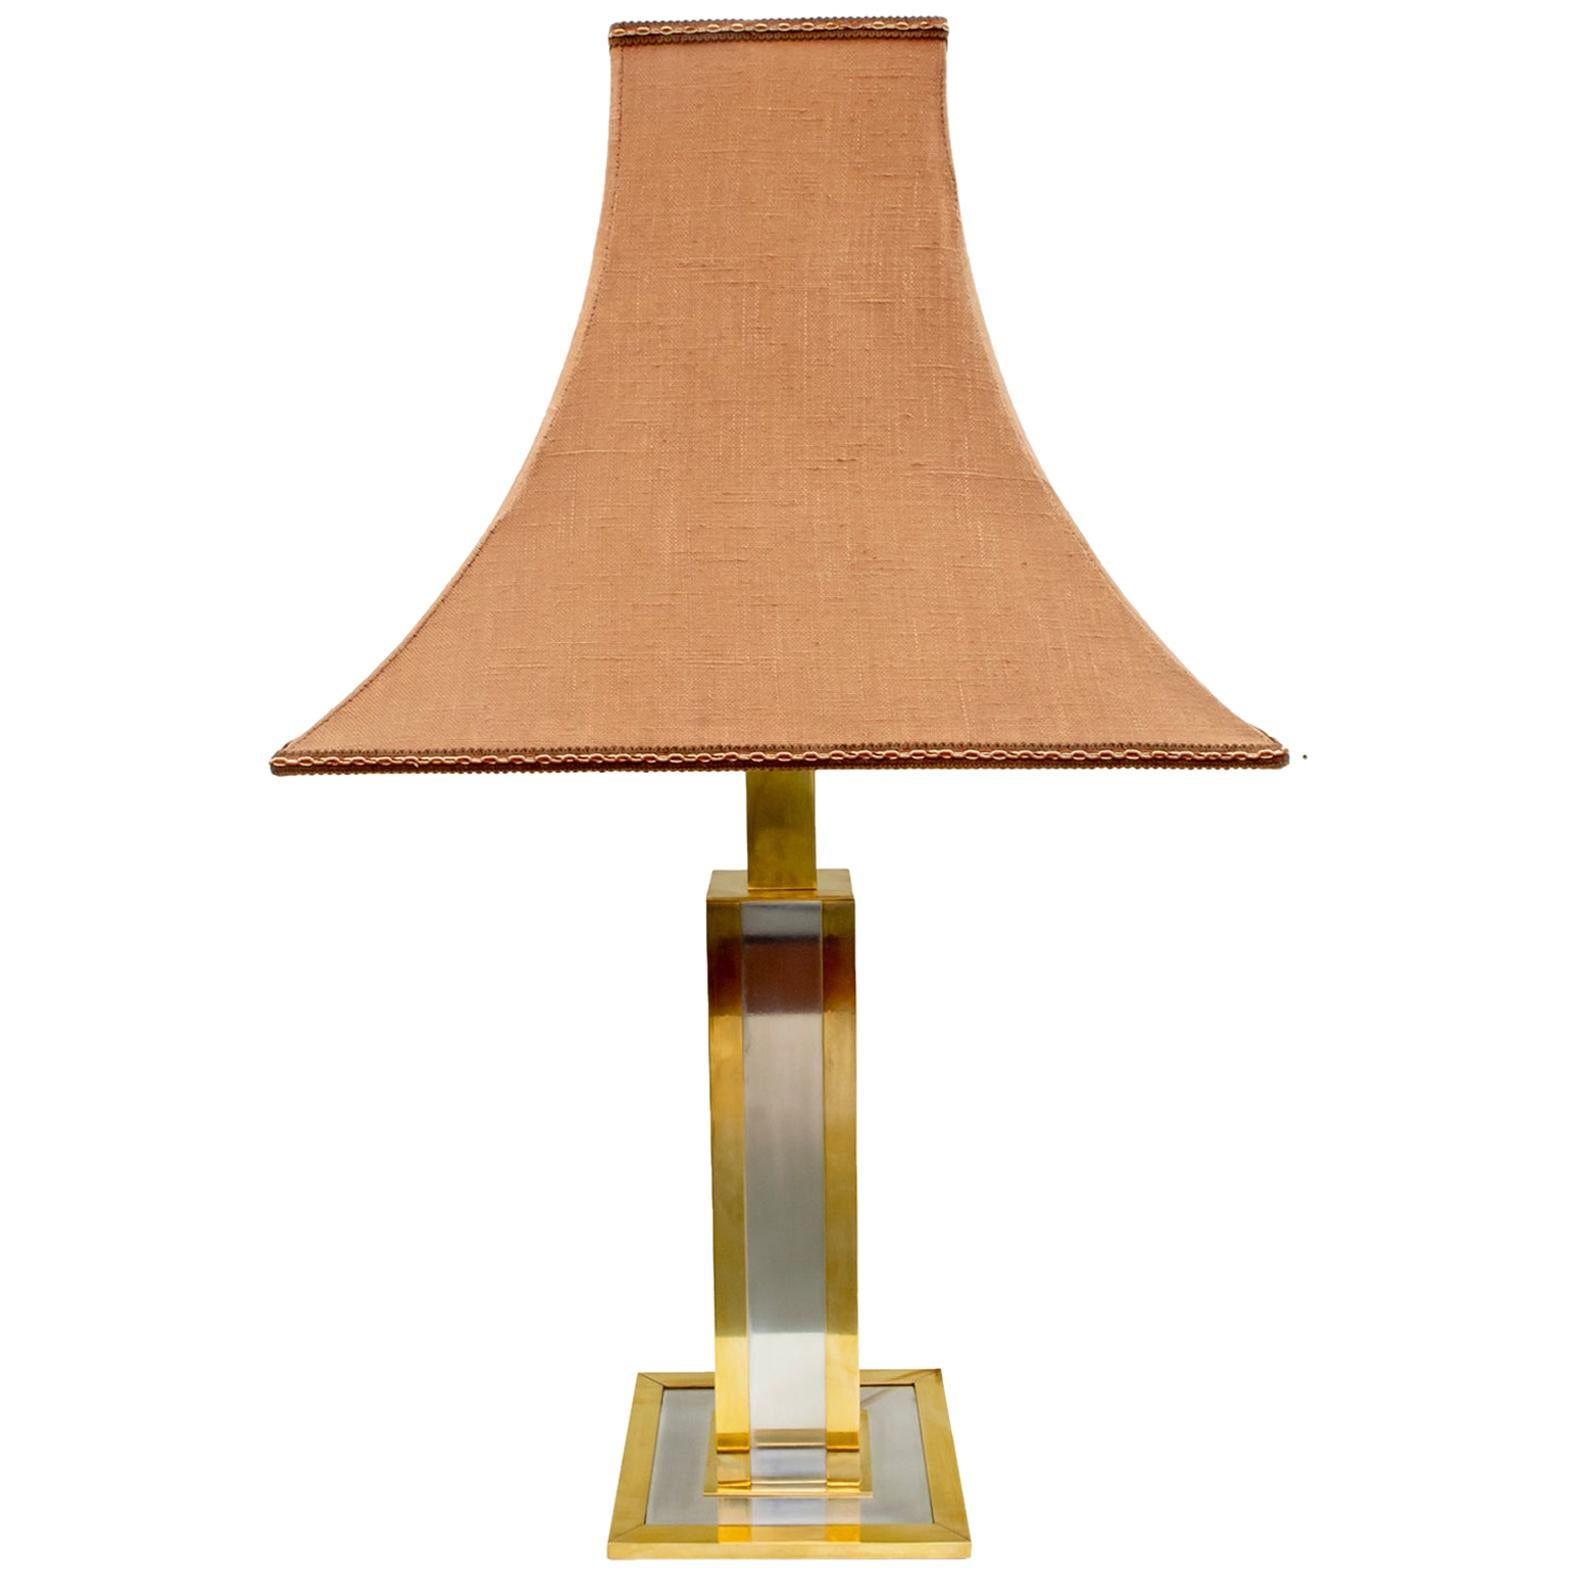 Willy Rizzo Mid-Century Modern Italian Brass and Chrome Table Lamp, 1970s